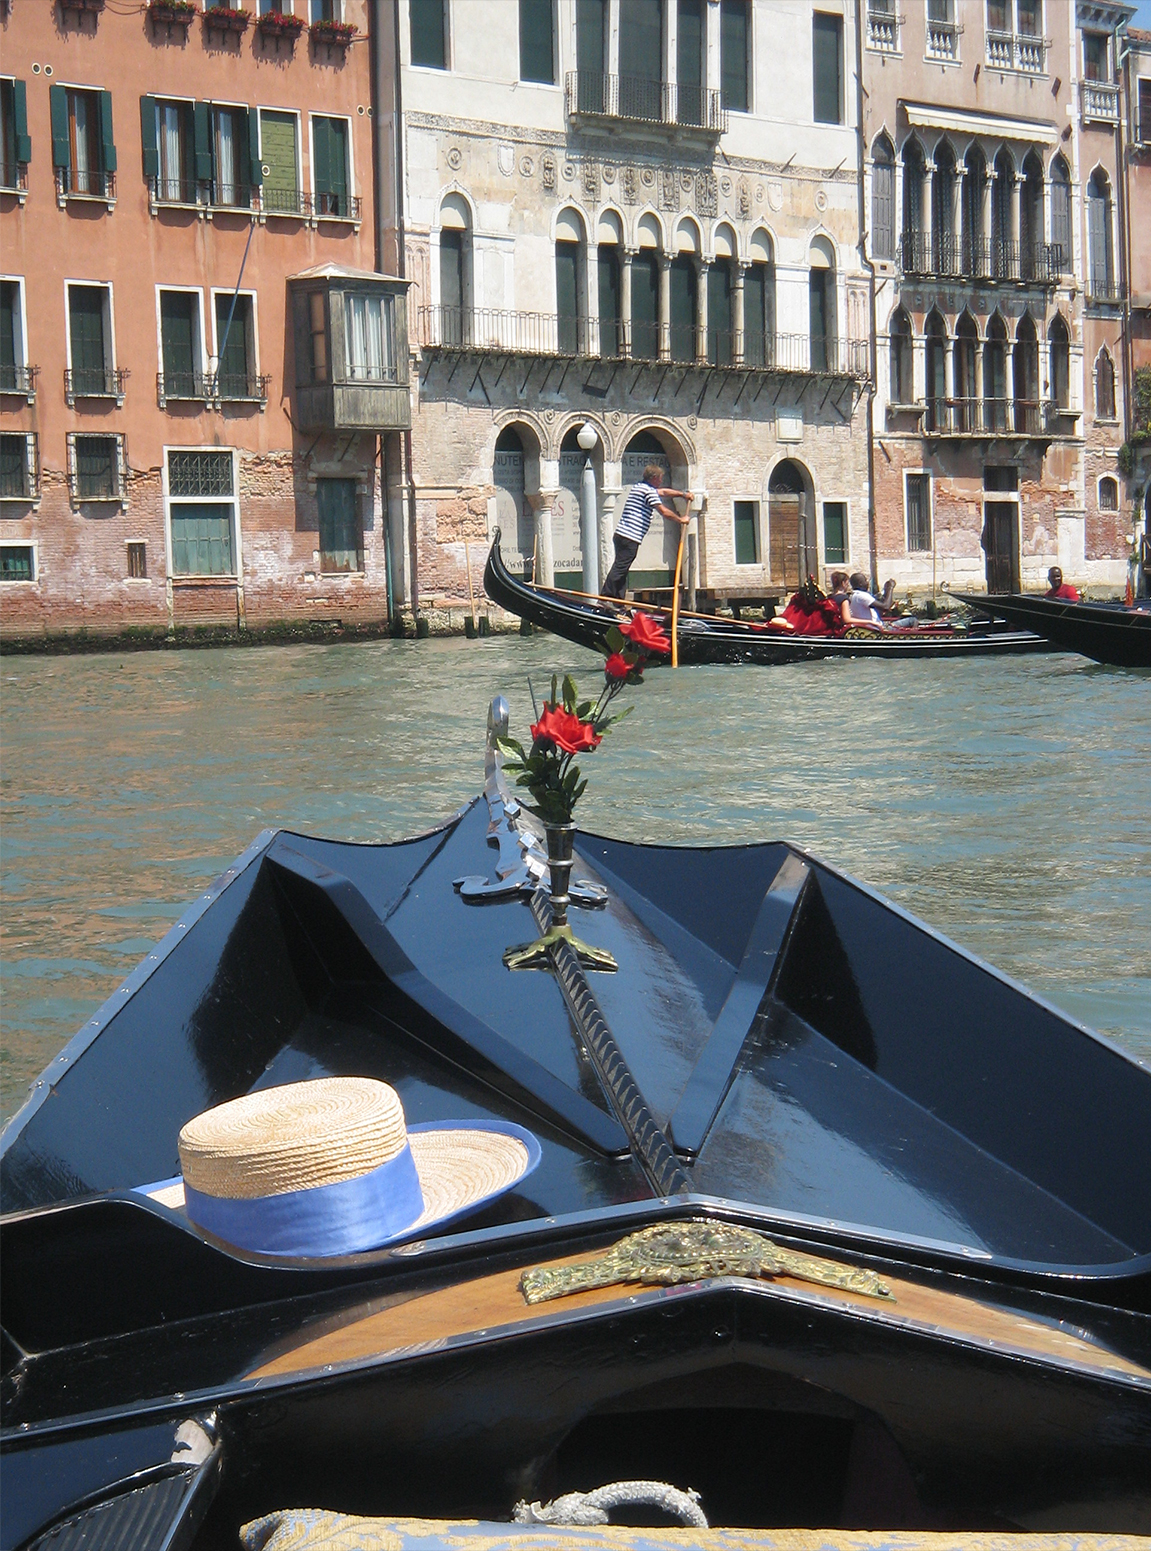 Teri Aitchison sharing a favorite memory from Venice!